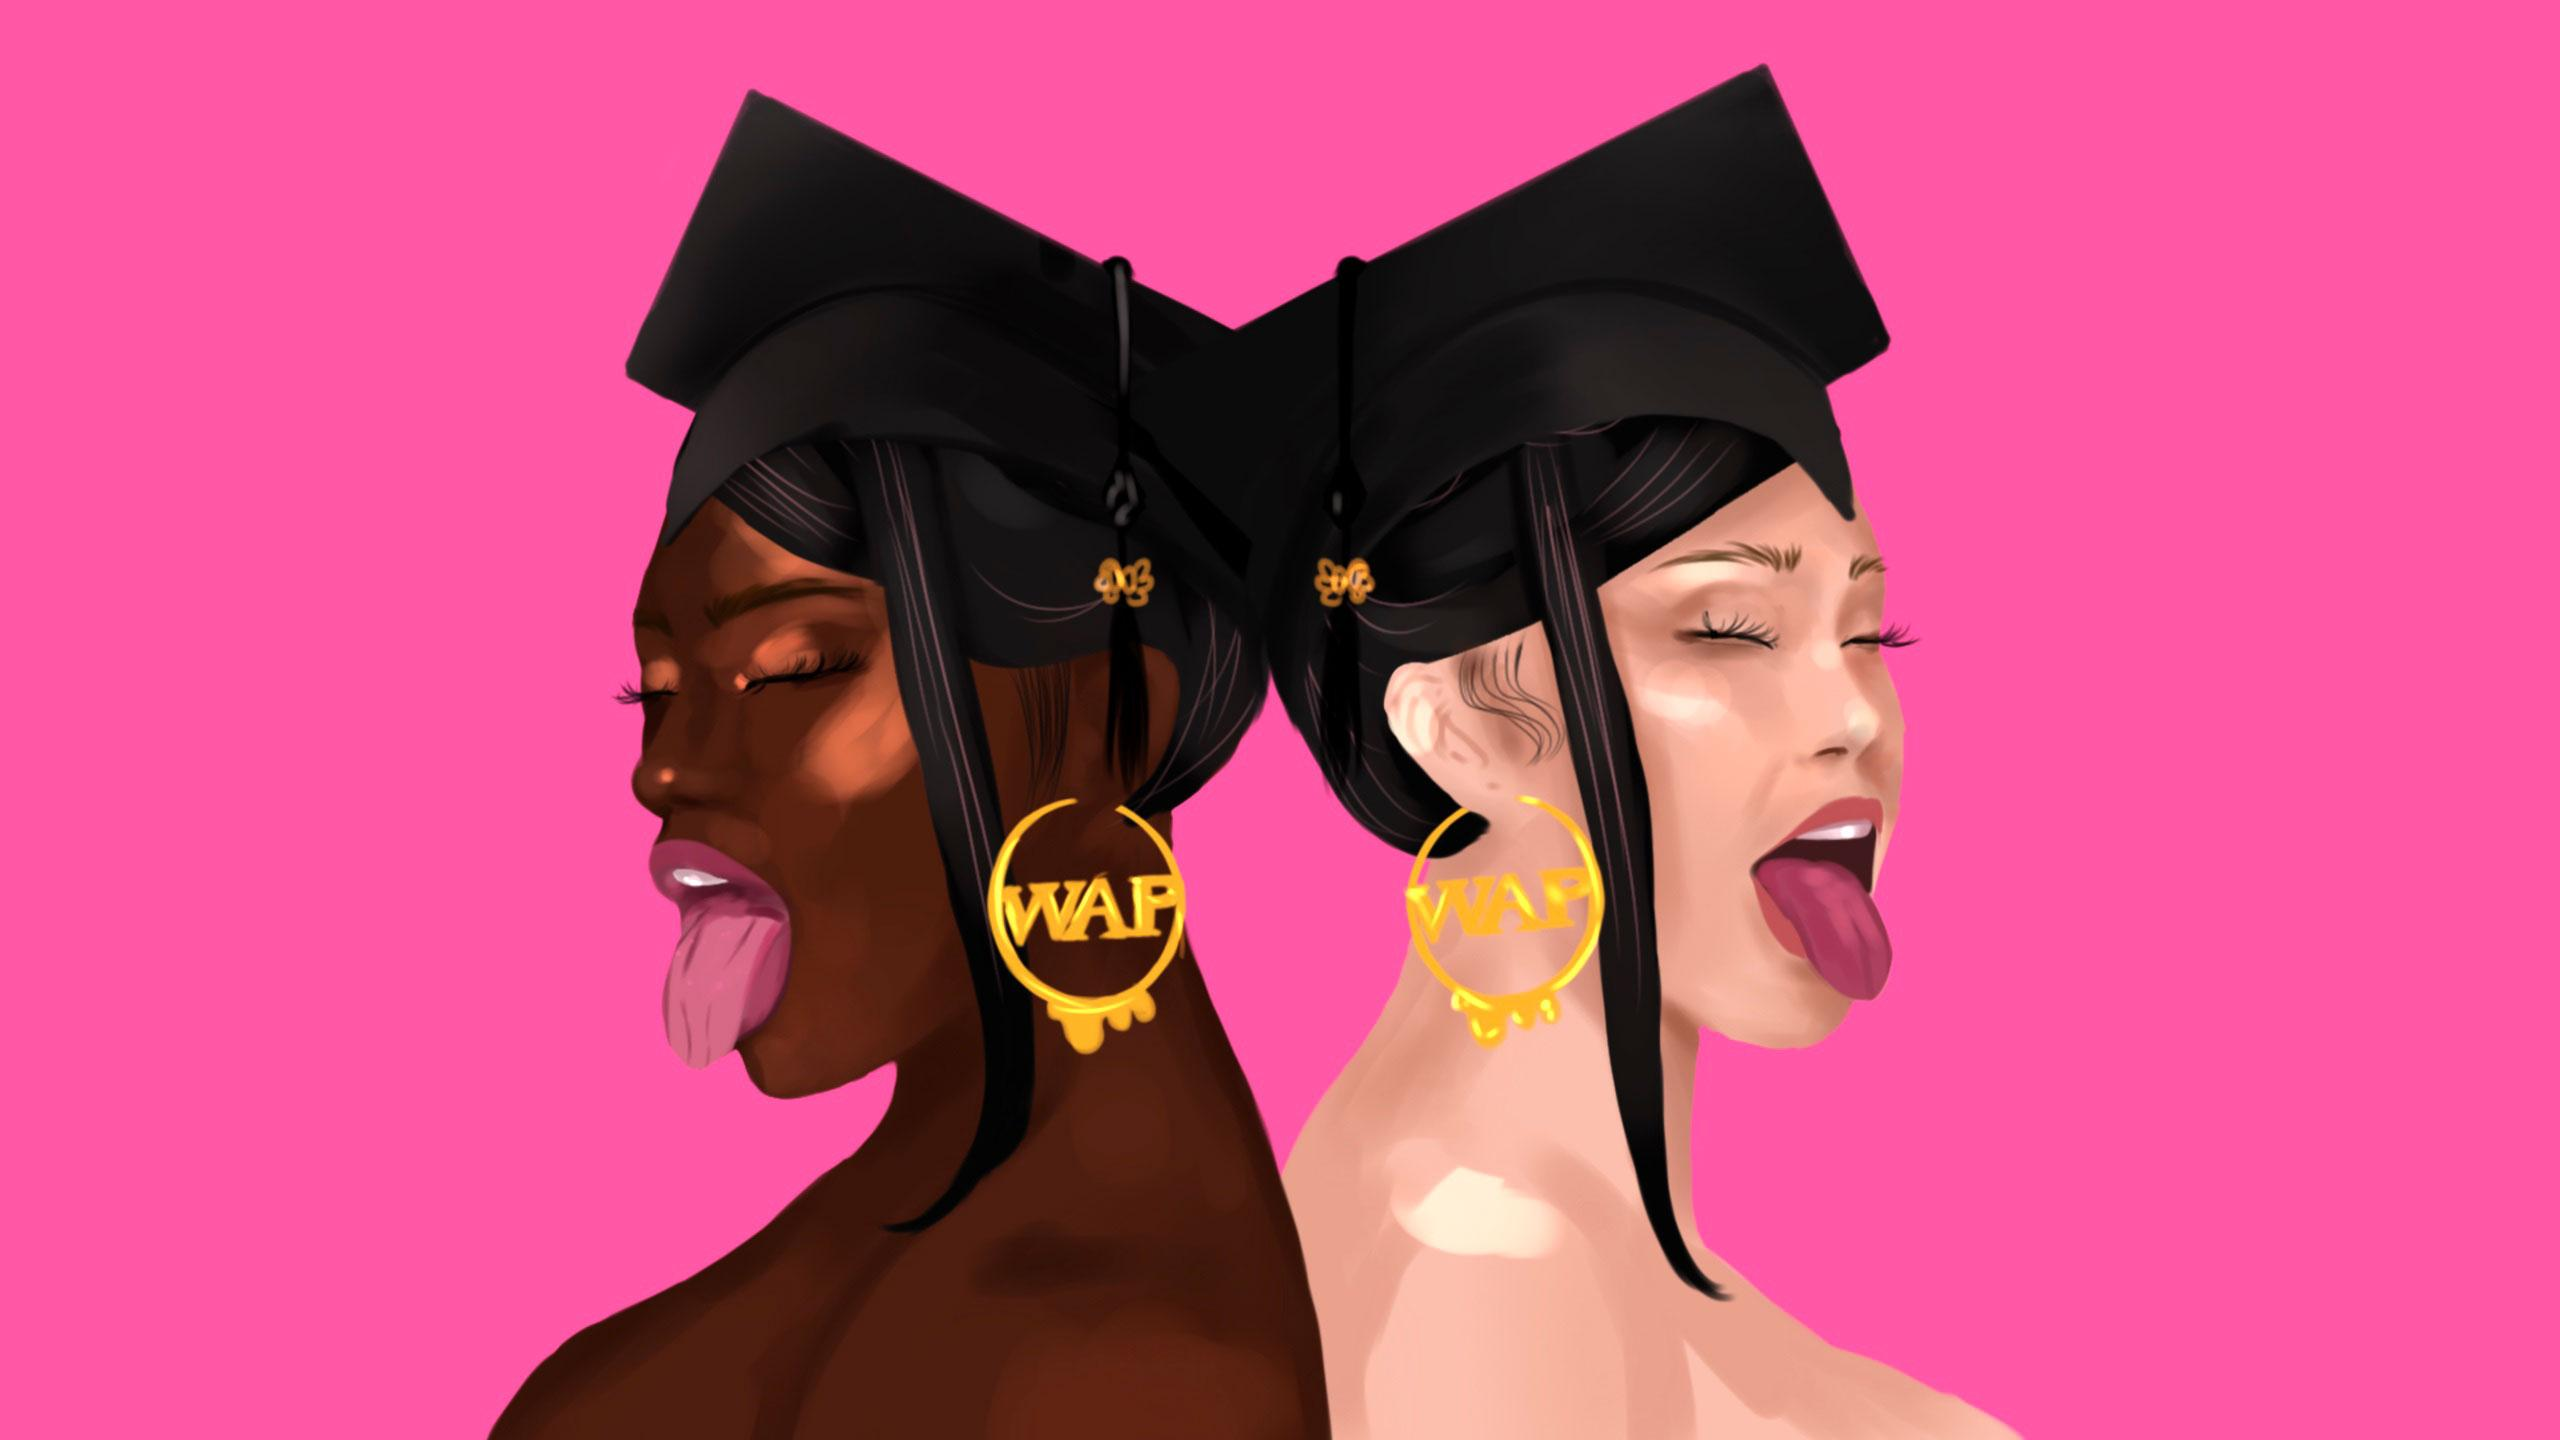 A recreation of the WAP cover album, with two girls standing back to back to each other, both wearing graduation caps.